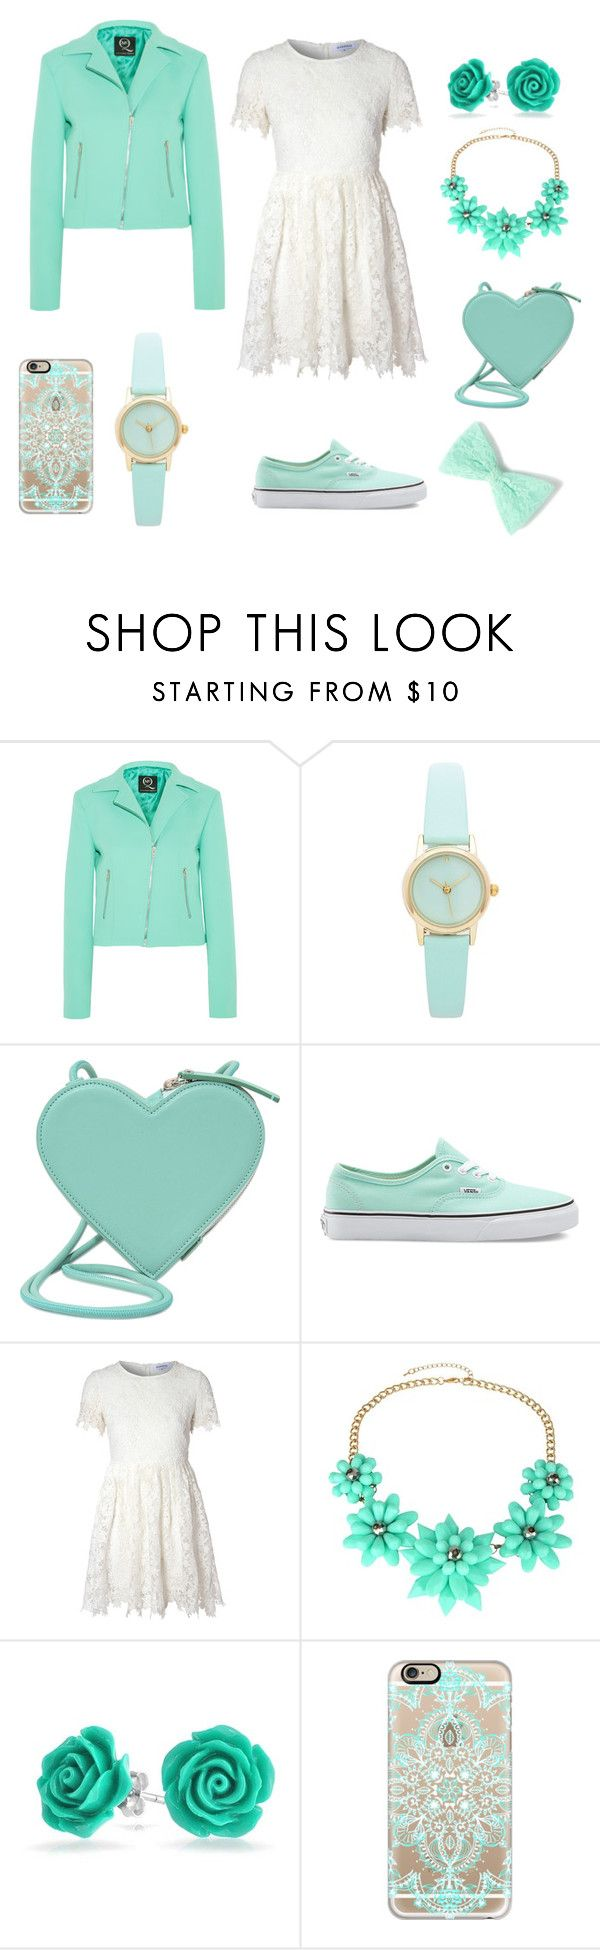 """Mint green girl"" by miabellawehri ❤ liked on Polyvore featuring McQ by Alexander McQueen, Christopher Kane, Vans, Glamorous, Bling Jewelry and Casetify"